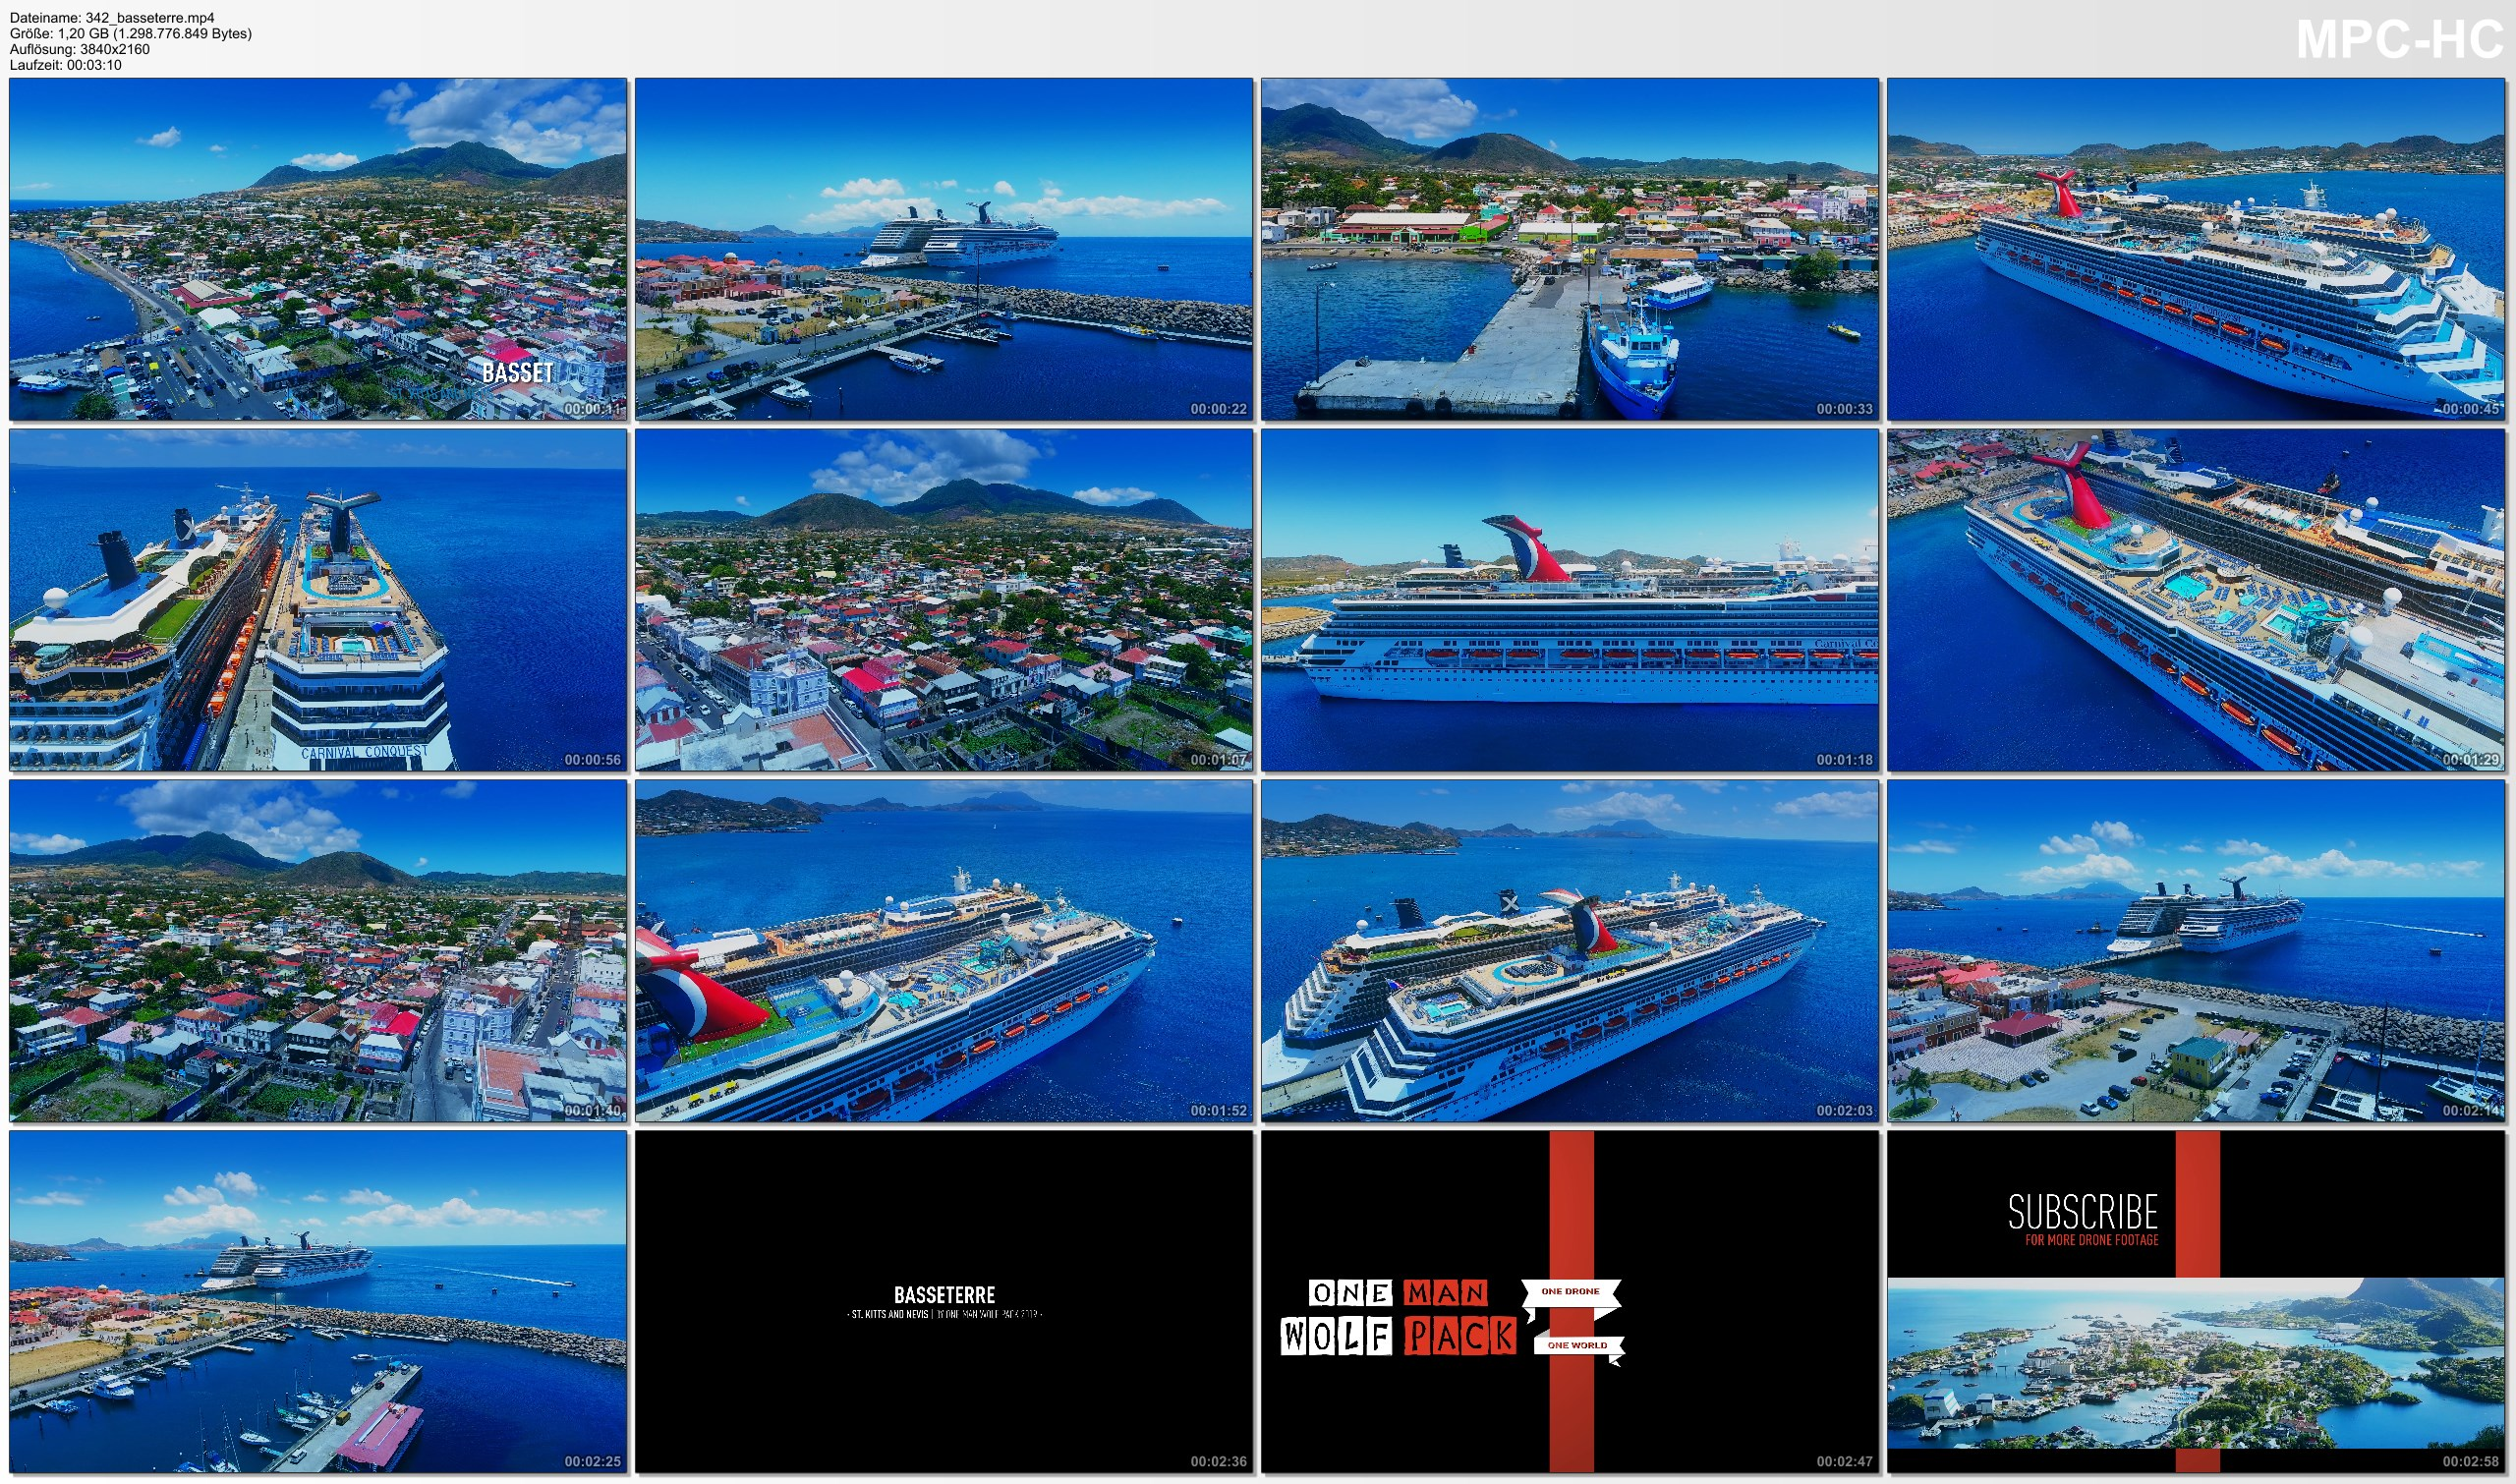 Drone Pictures from Video 【4K】Drone Footage | Basseterre - Capital of Saint Kitts and Nevis 2019 ..:: Cinematic Aerial Film